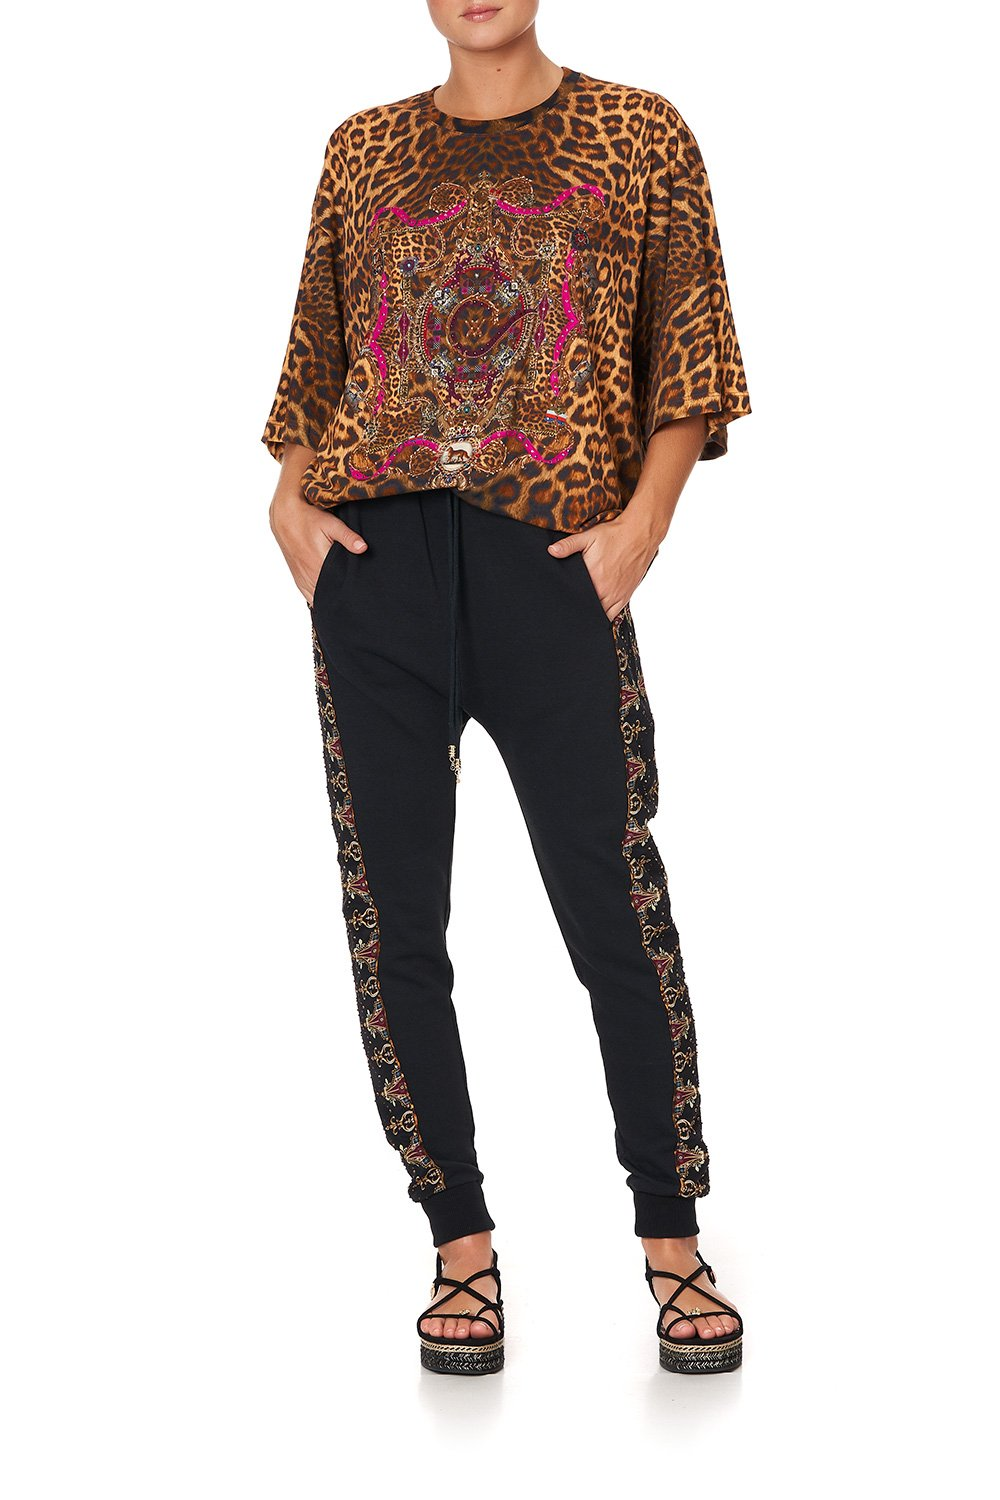 JERSEY AND SILK MIX DROP CROTCH PANT LADY LODGE